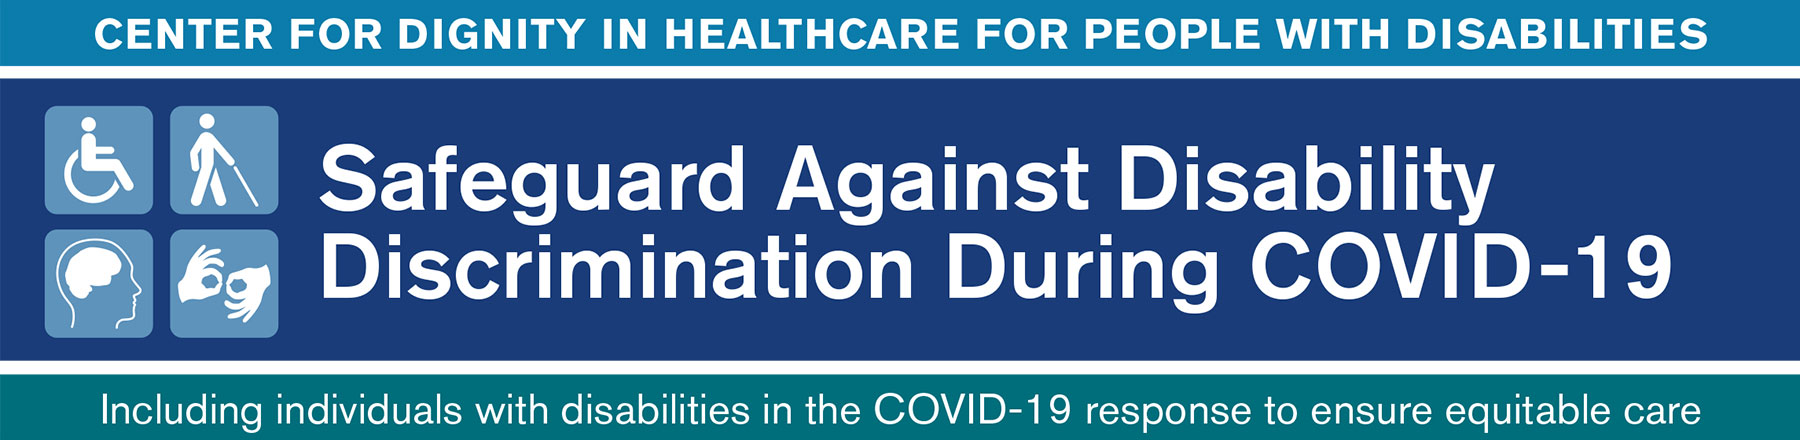 Safeguard Against Disability Discrimination During COVID-19